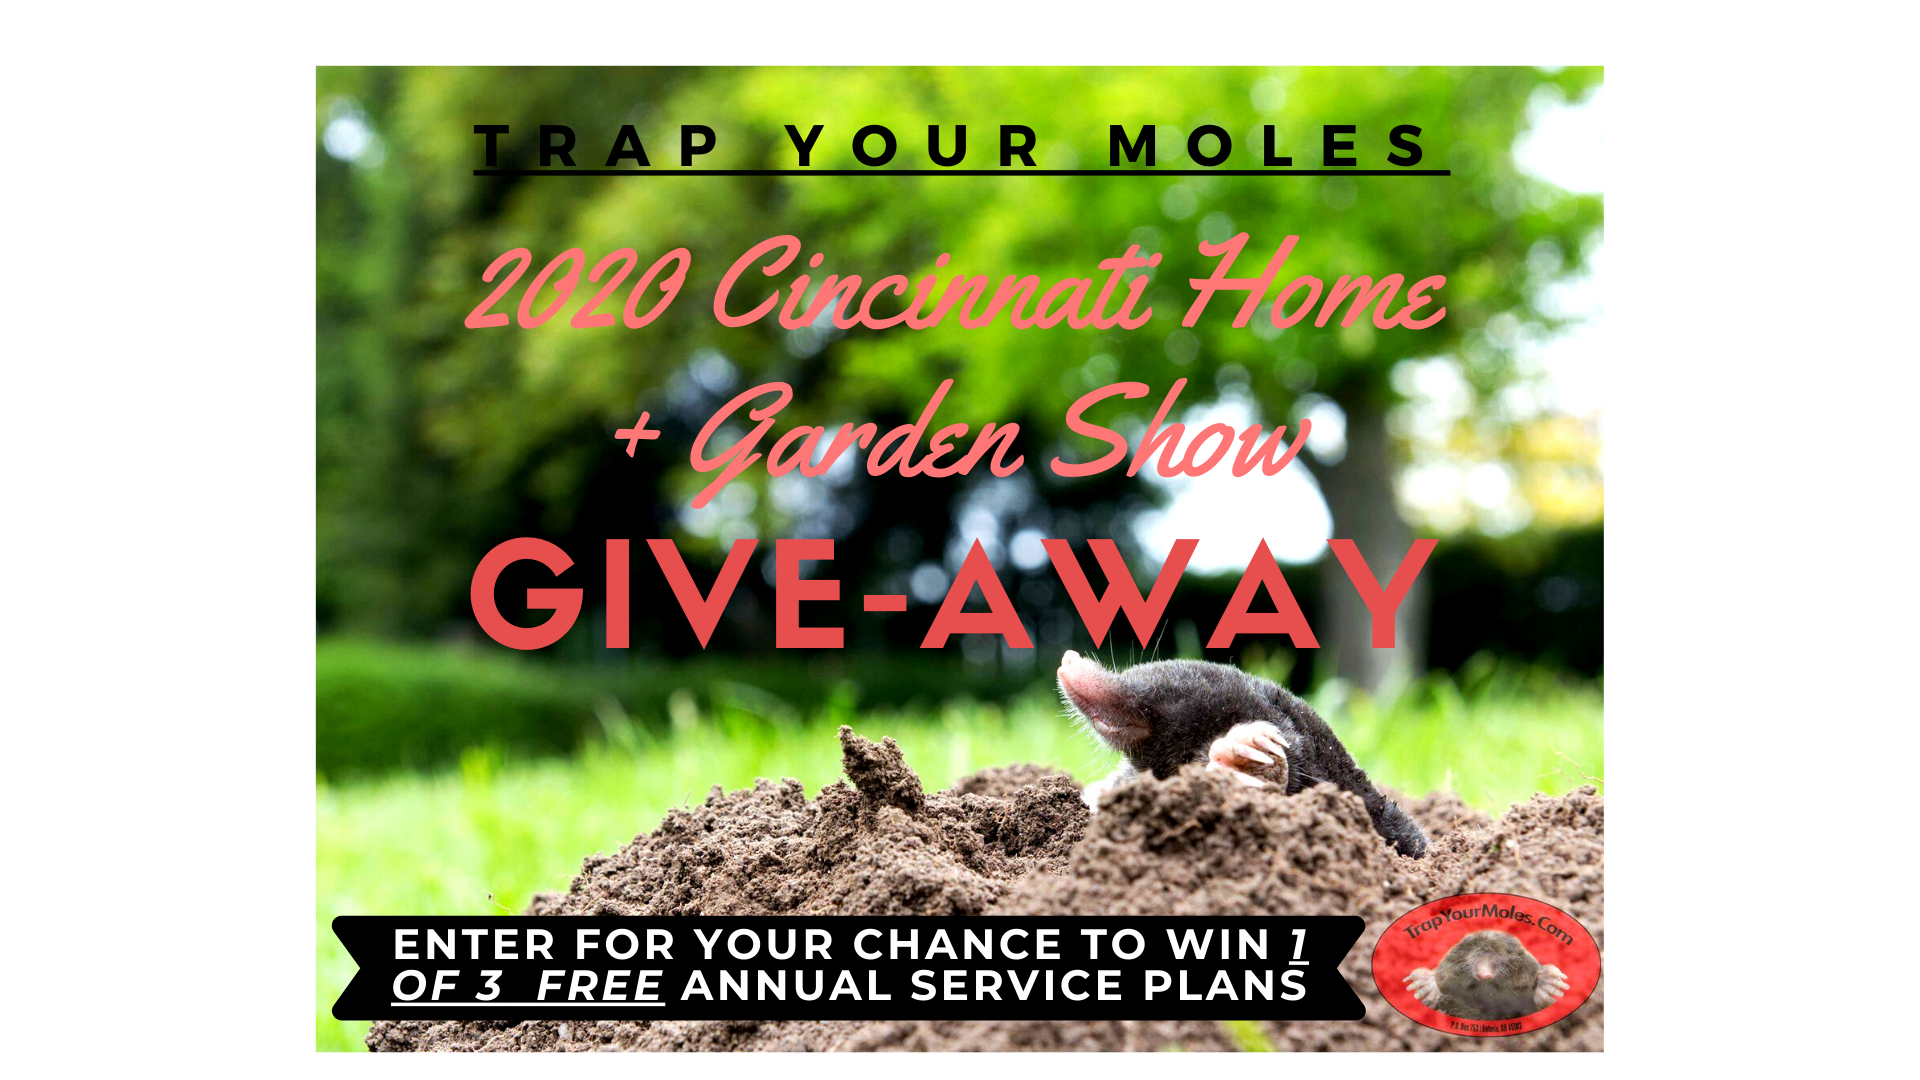 Home and Garden Show Event Graphic